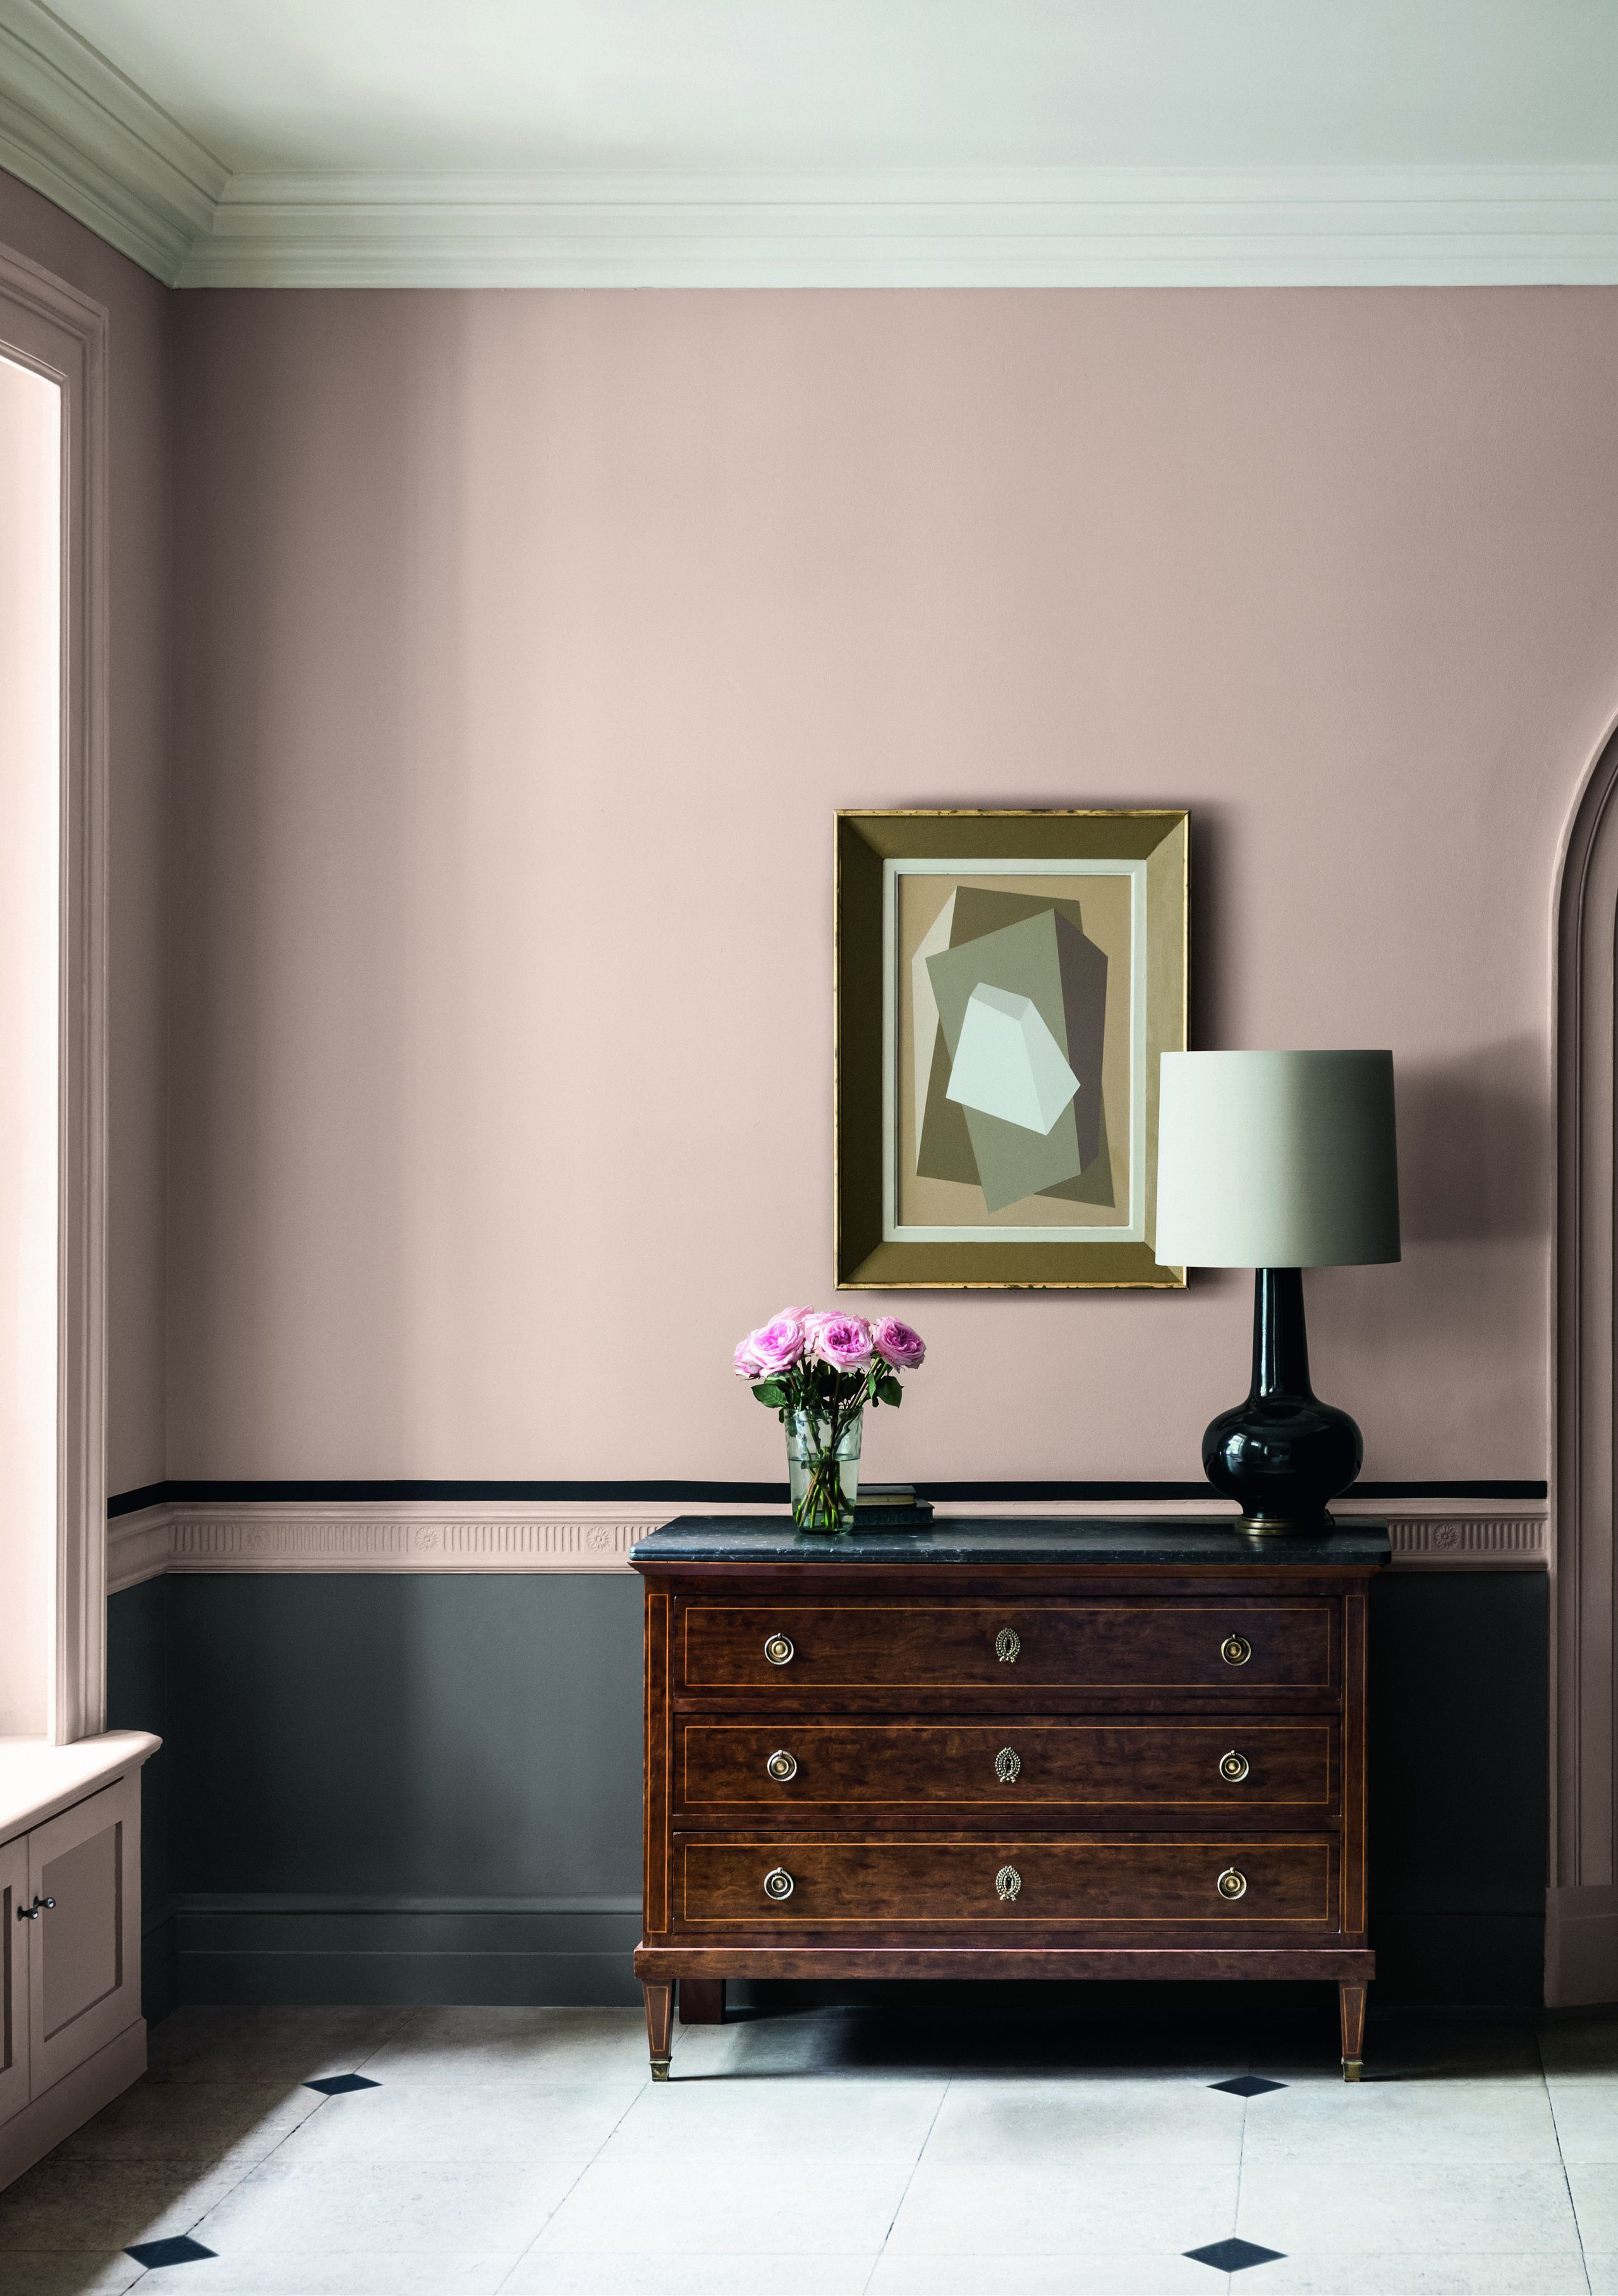 Combining a grey pink paint with black creates an effortlessly smart finish here and picks out the black of the floor tiles and lamp base neatly tying the